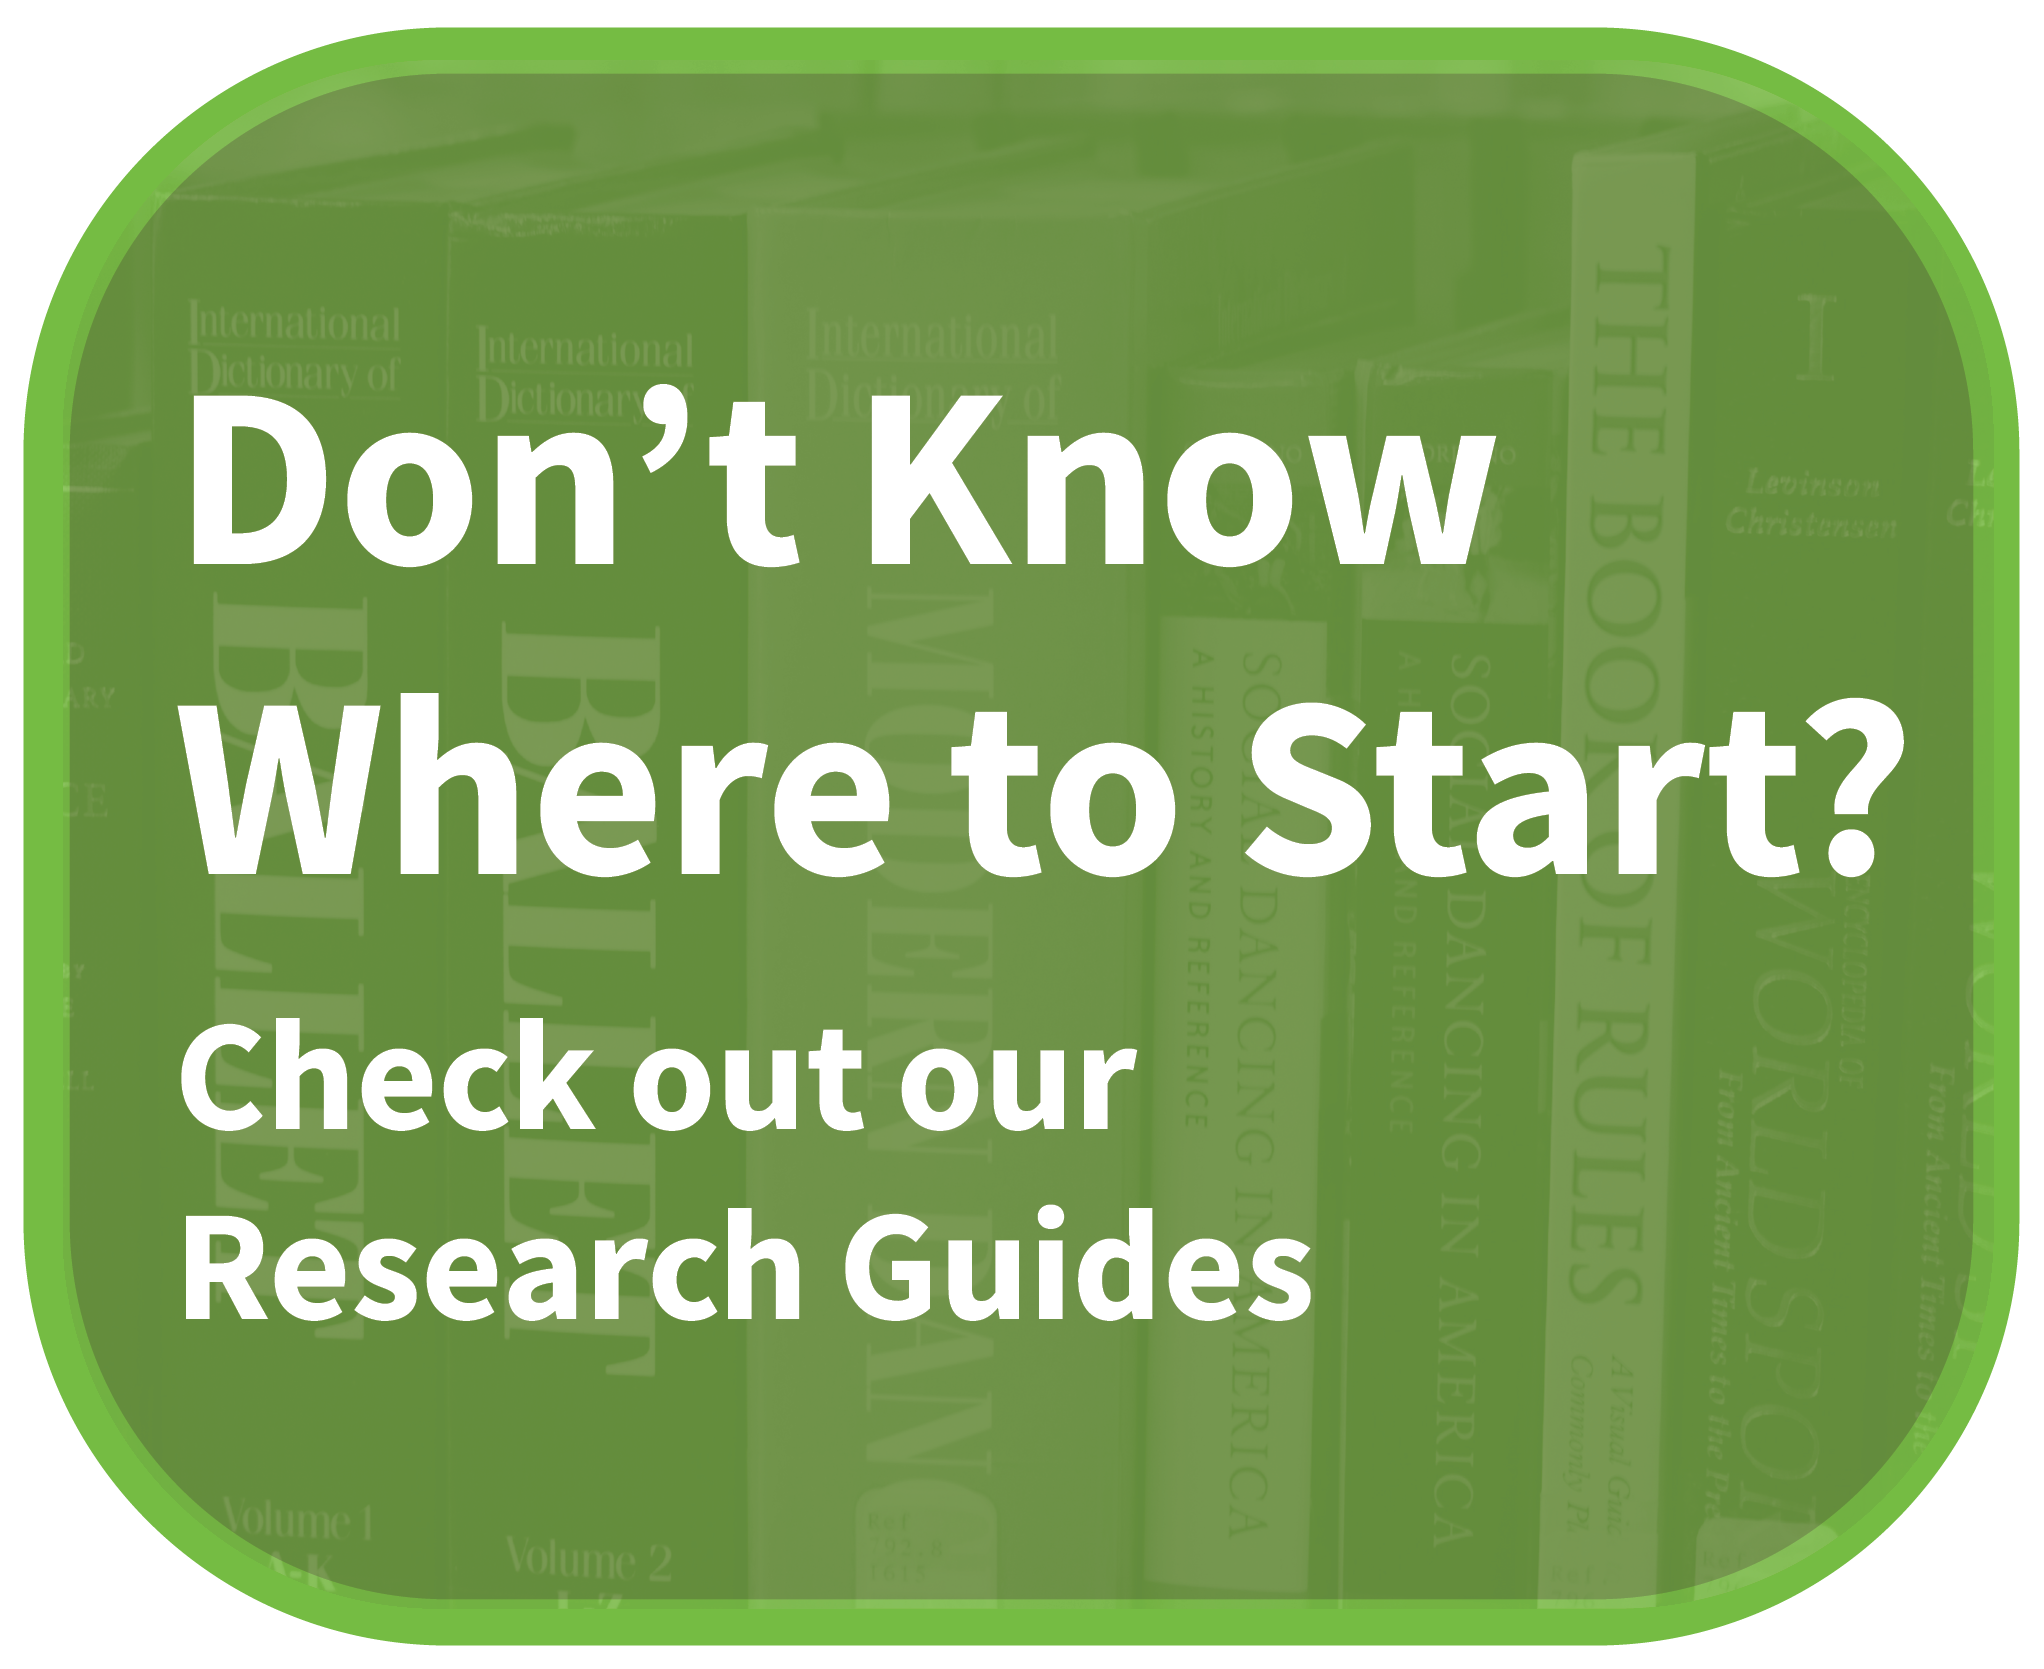 Unsure where to Start? Check our Research Guides